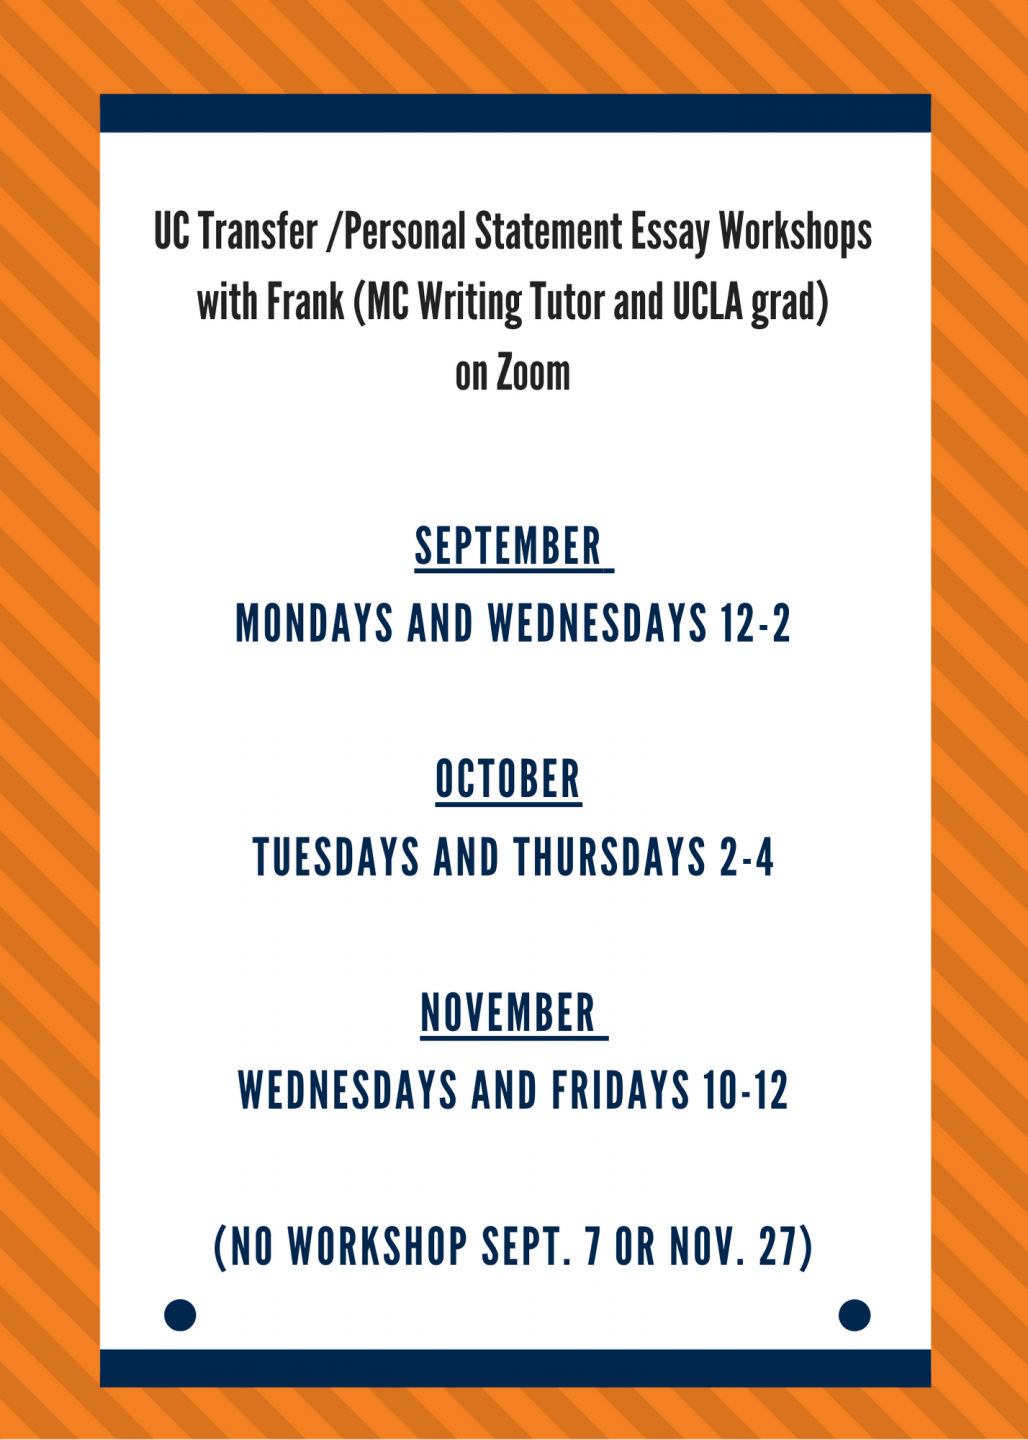 transfer essay workshop schedule